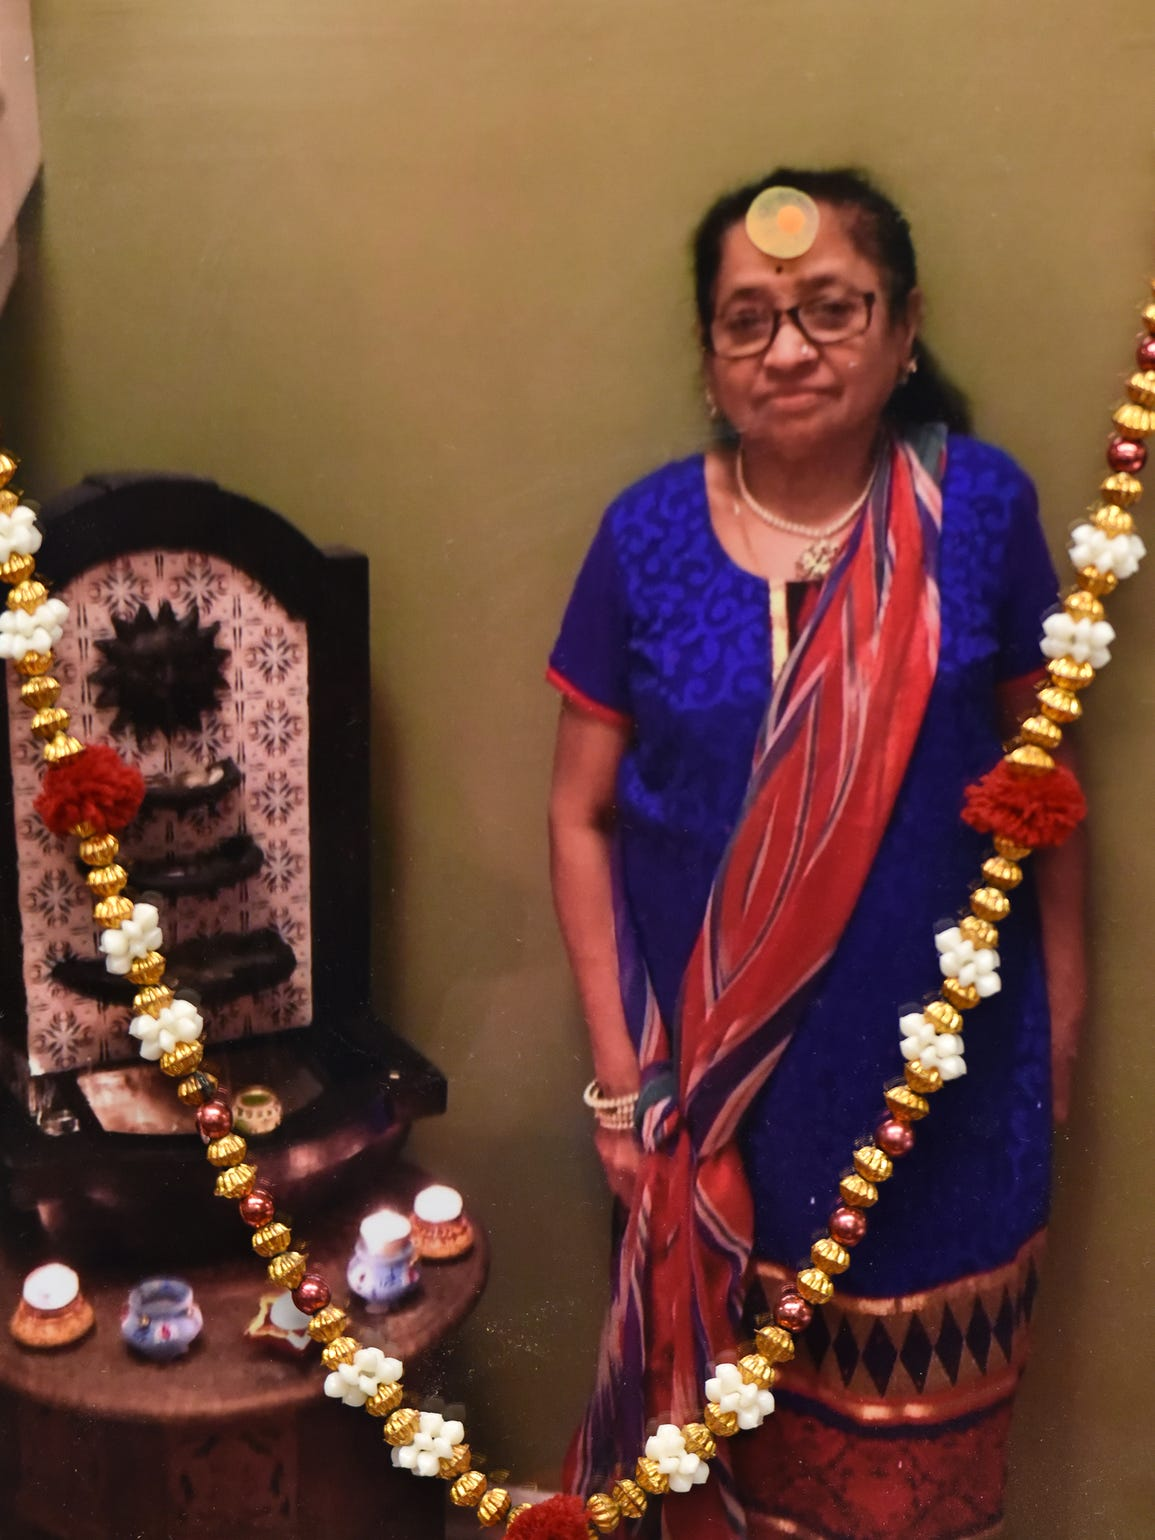 Beads adorn this photo of Rekhaben Shah on her family's memorial altar. Shah, 67 died after she stopped breathing during a routine colonoscopy at Oak Tree Surgery Center in Edison, NJ.